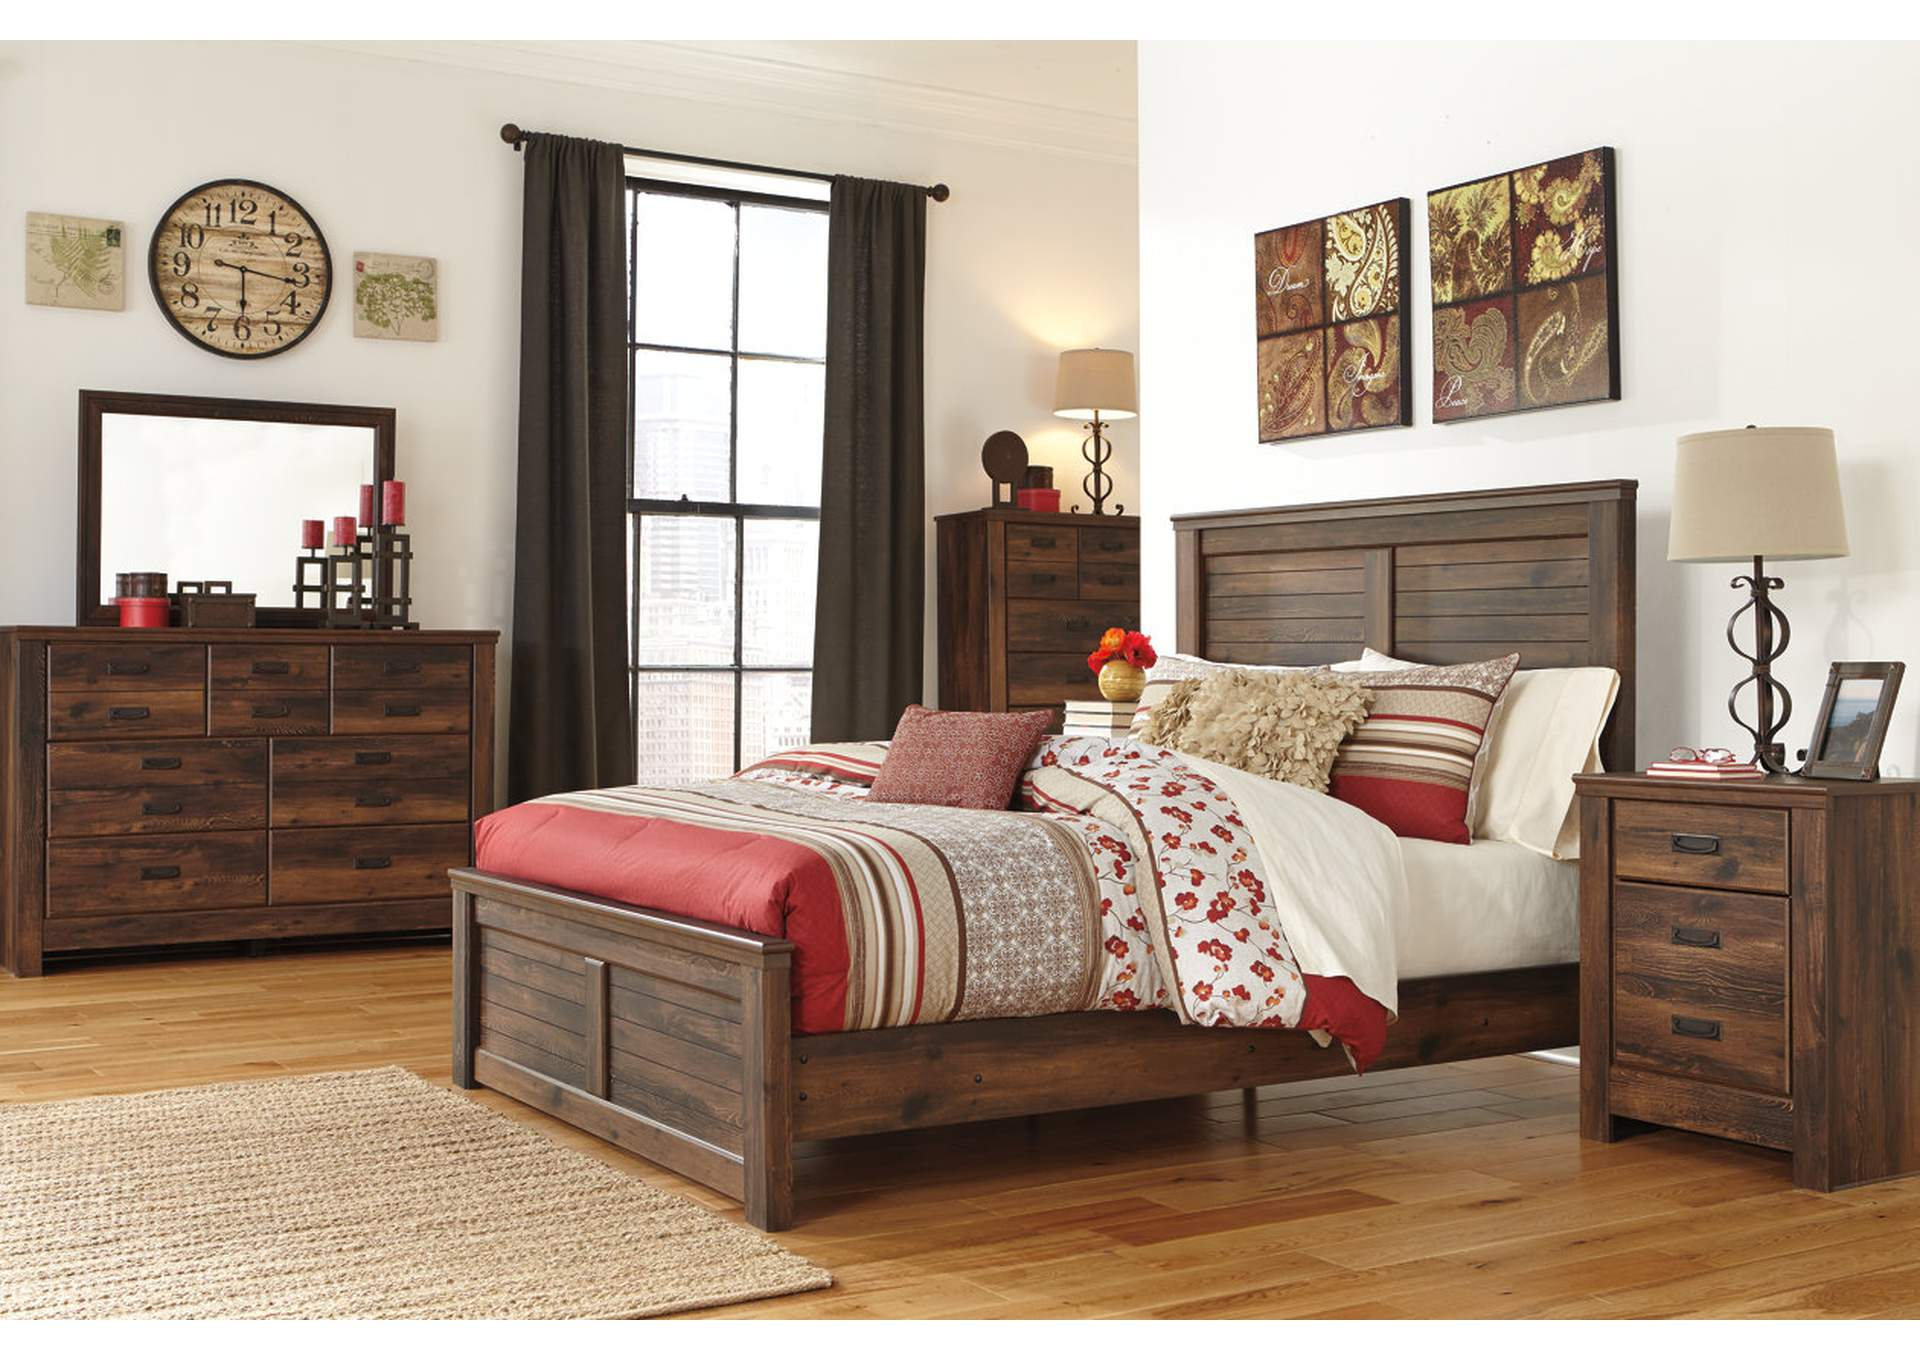 Quinden King Panel Bed w/Dresser, Mirror, Drawer Chest & Nightstand,Signature Design By Ashley